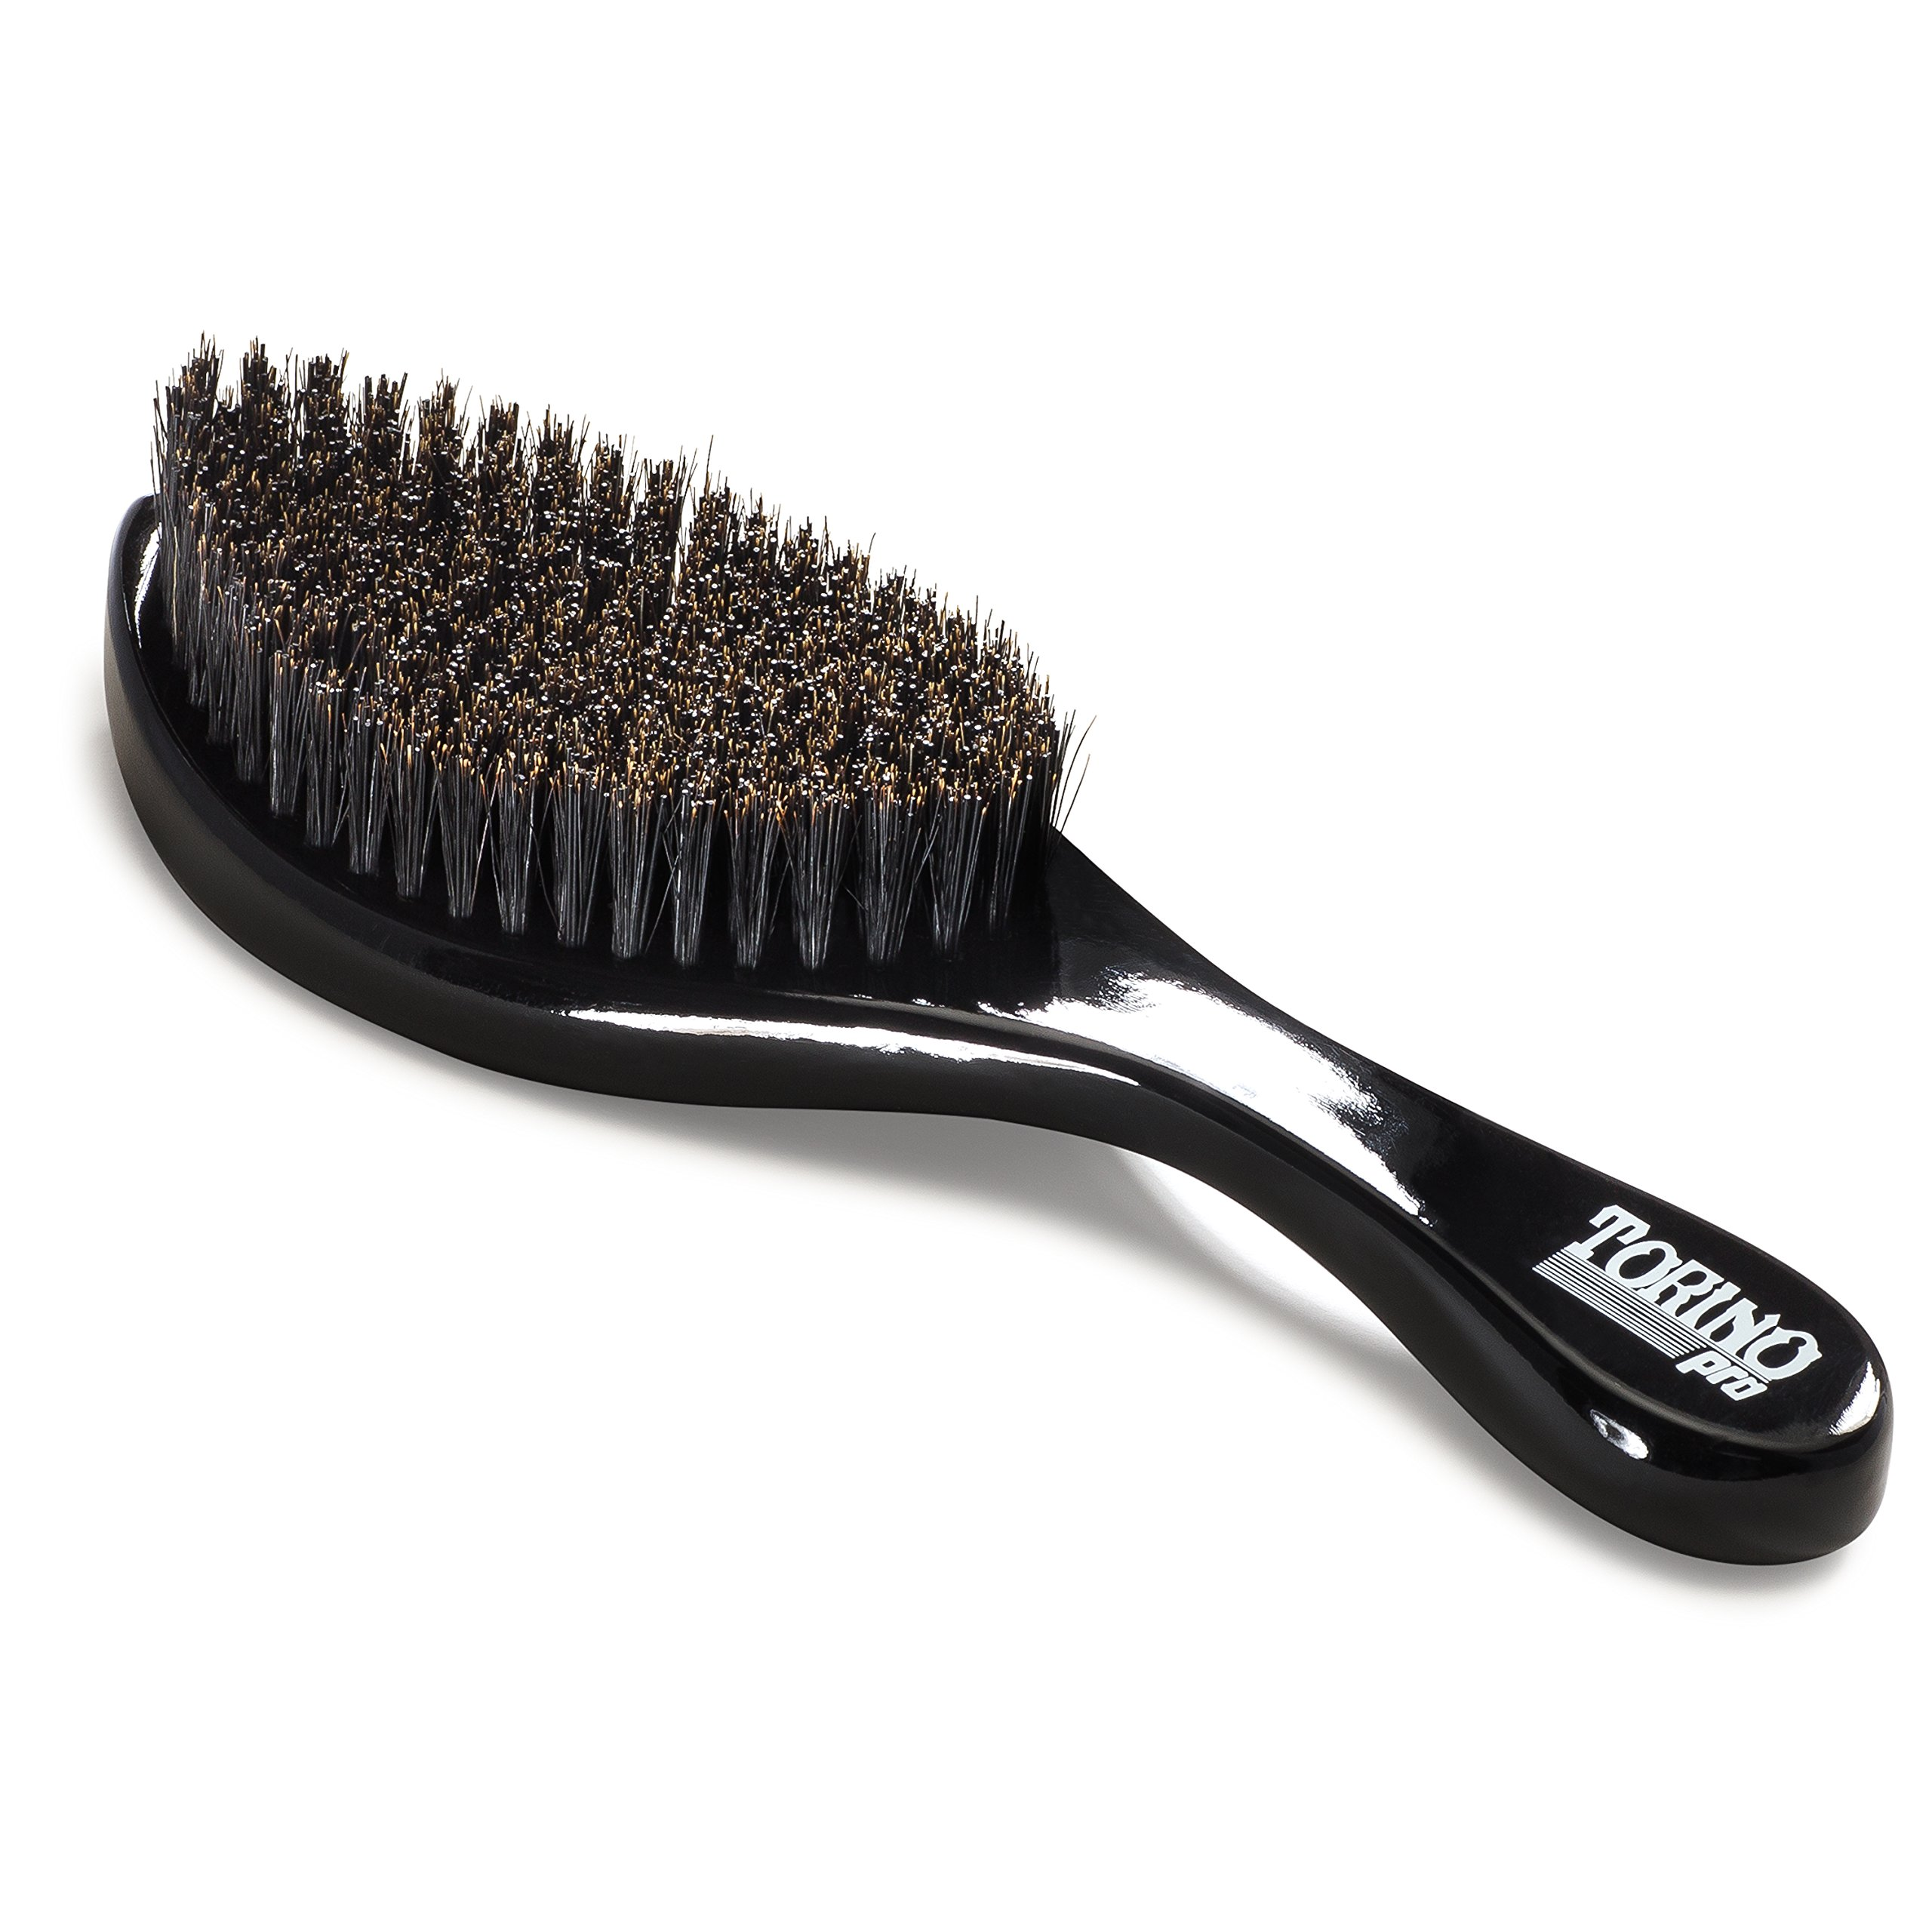 Torino Pro Curve Wave Brush by Brush King - #450 - Medium Hard Curve Wave Brush - Made with Reinforced Boar & Nylon Bristles -True Texture Medium Hard 360 Waves Brushes by Torino Pro (Image #4)